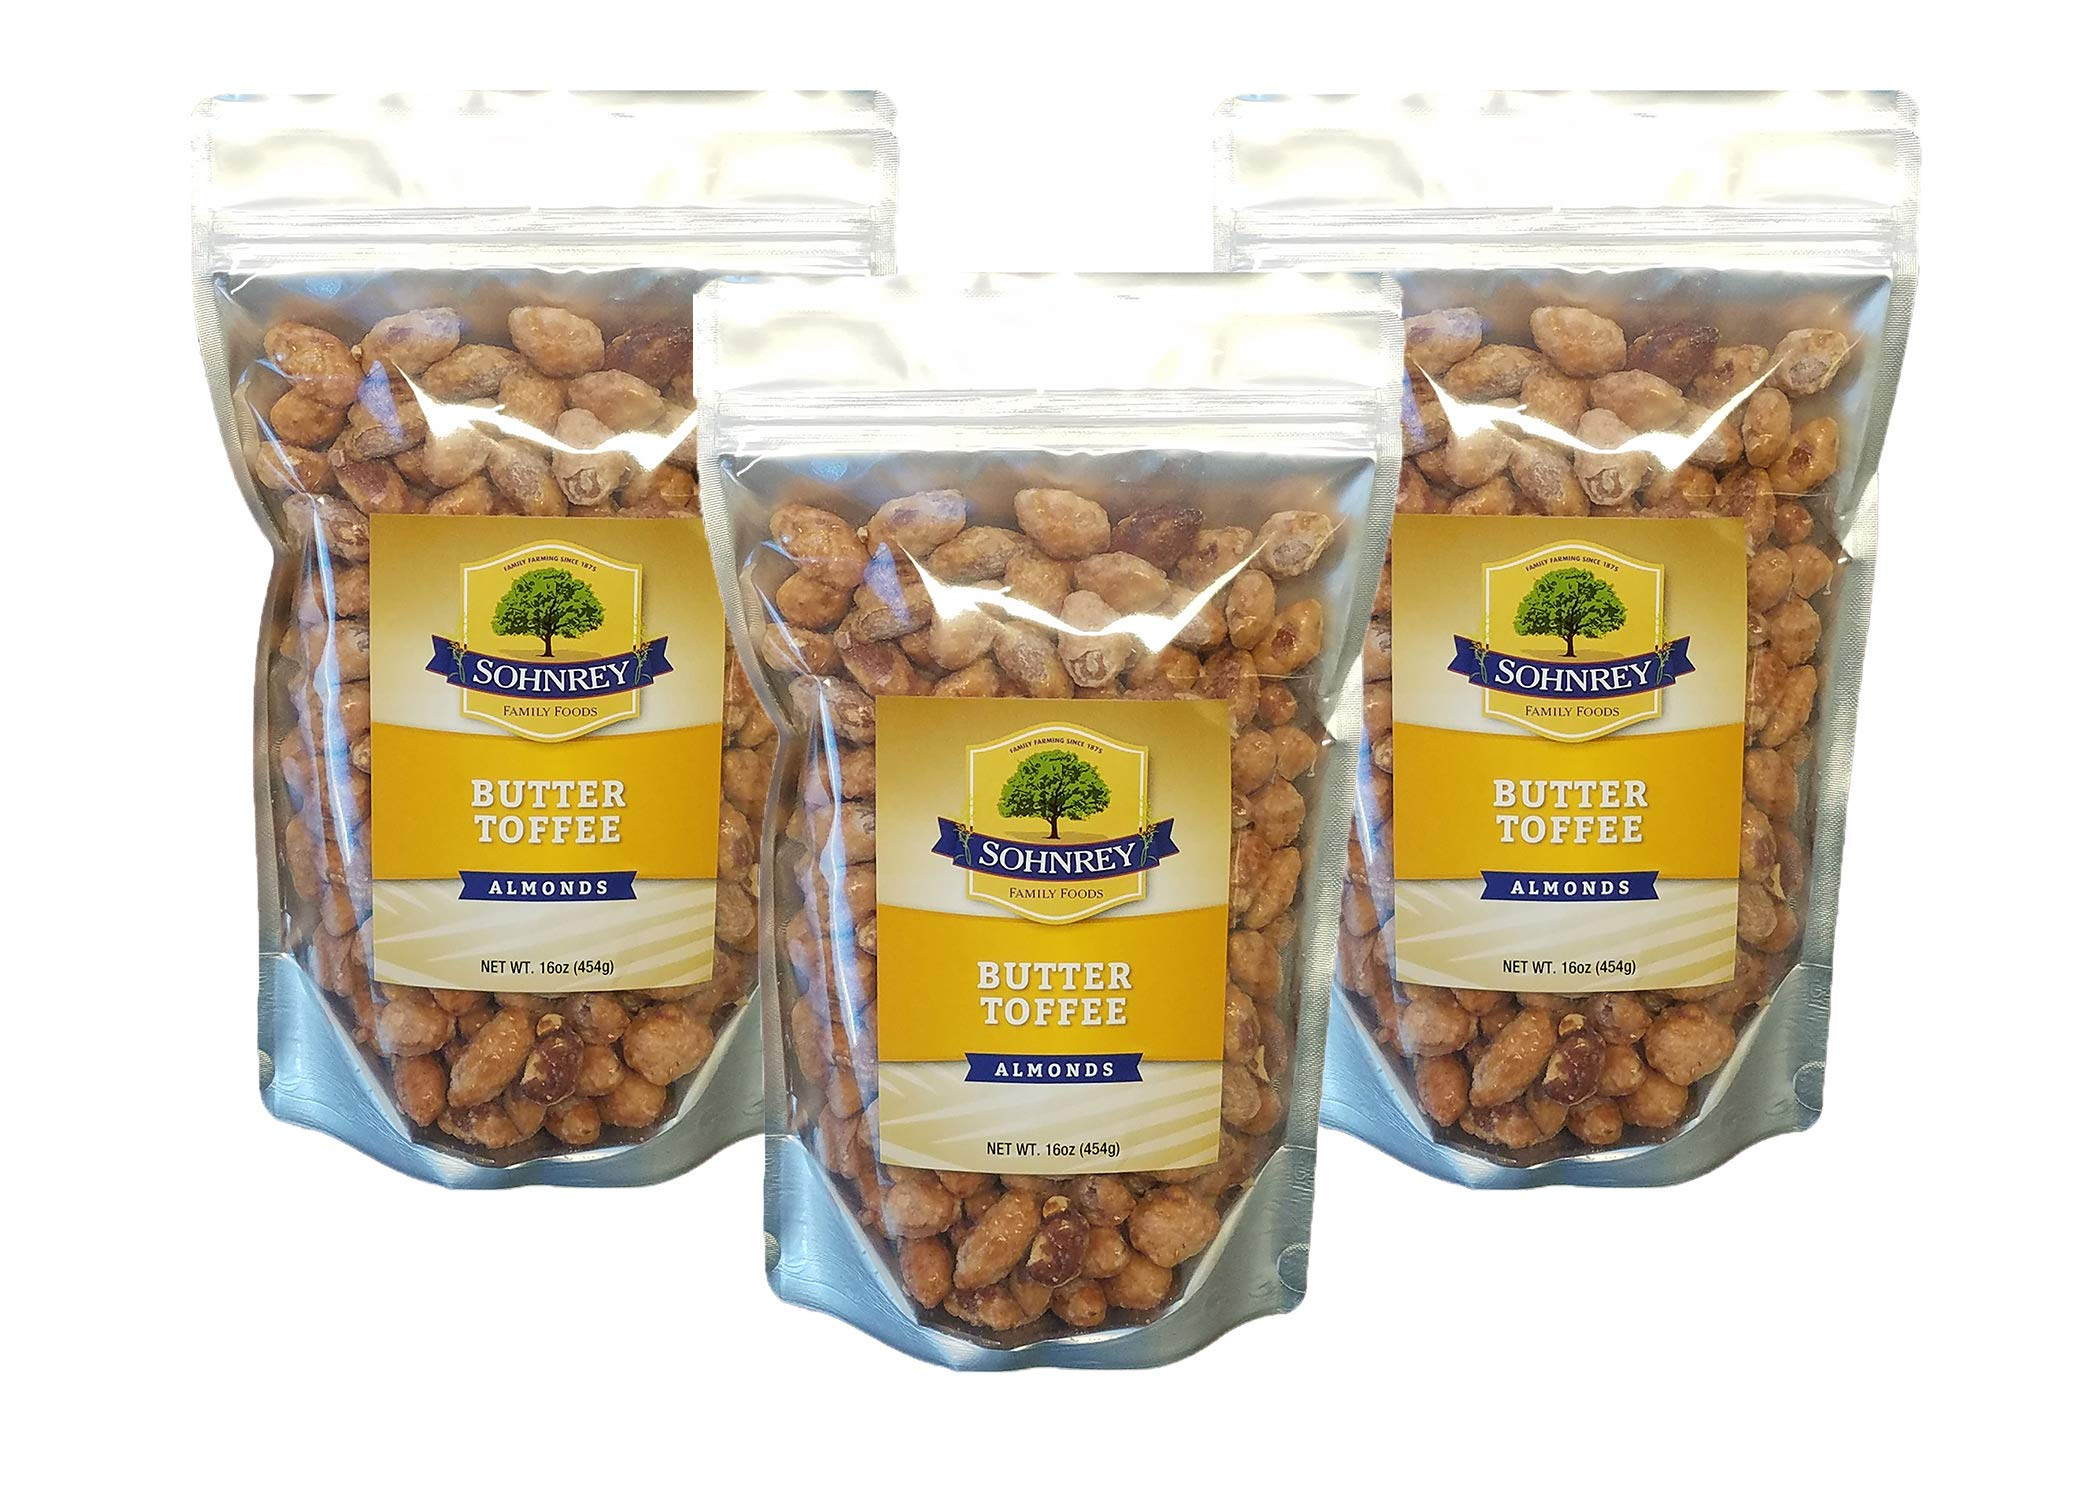 Butter Toffee Almonds Fresh Gourmet Sweet and Salty Crunch (16 oz) Resealable Bag from Sohnrey Family Foods (3-Pack (48 oz))